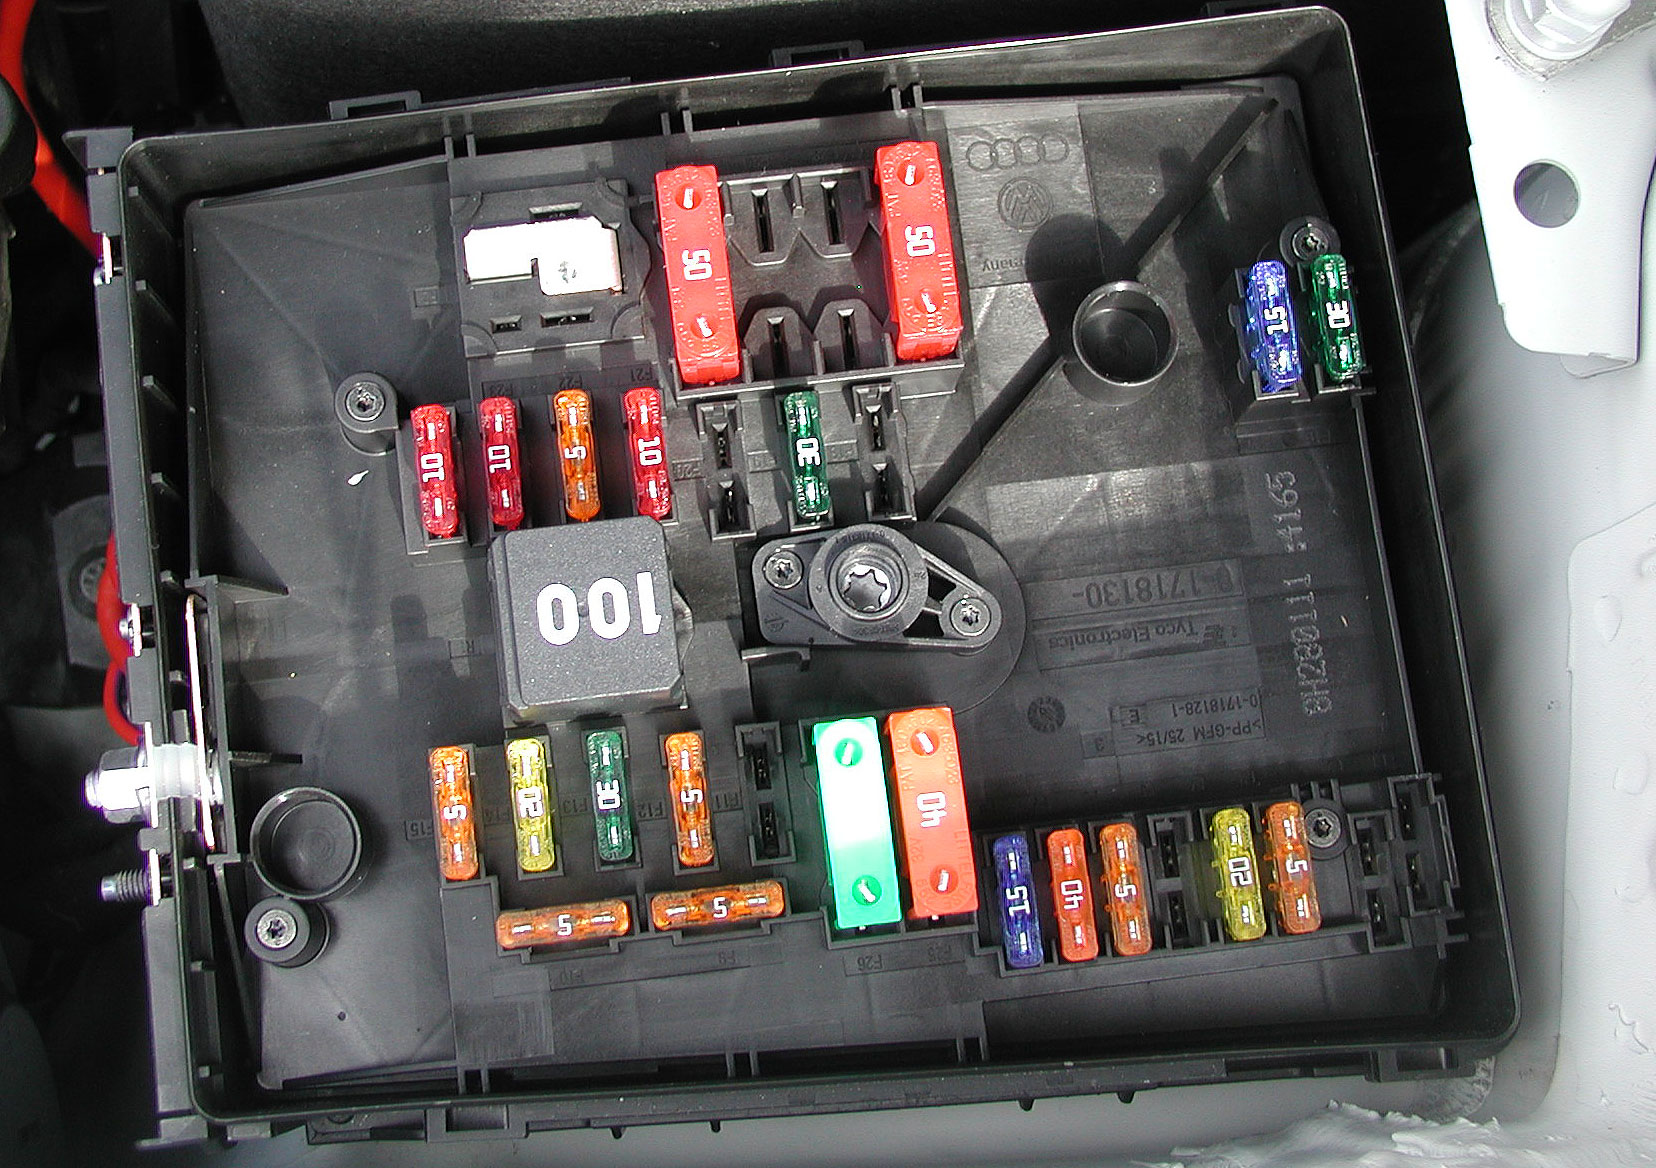 engineFuses2 golf mkv 1 9 tdi rcd 310 battery drain the volkswagen club of 2009 volkswagen jetta fuse box at bayanpartner.co